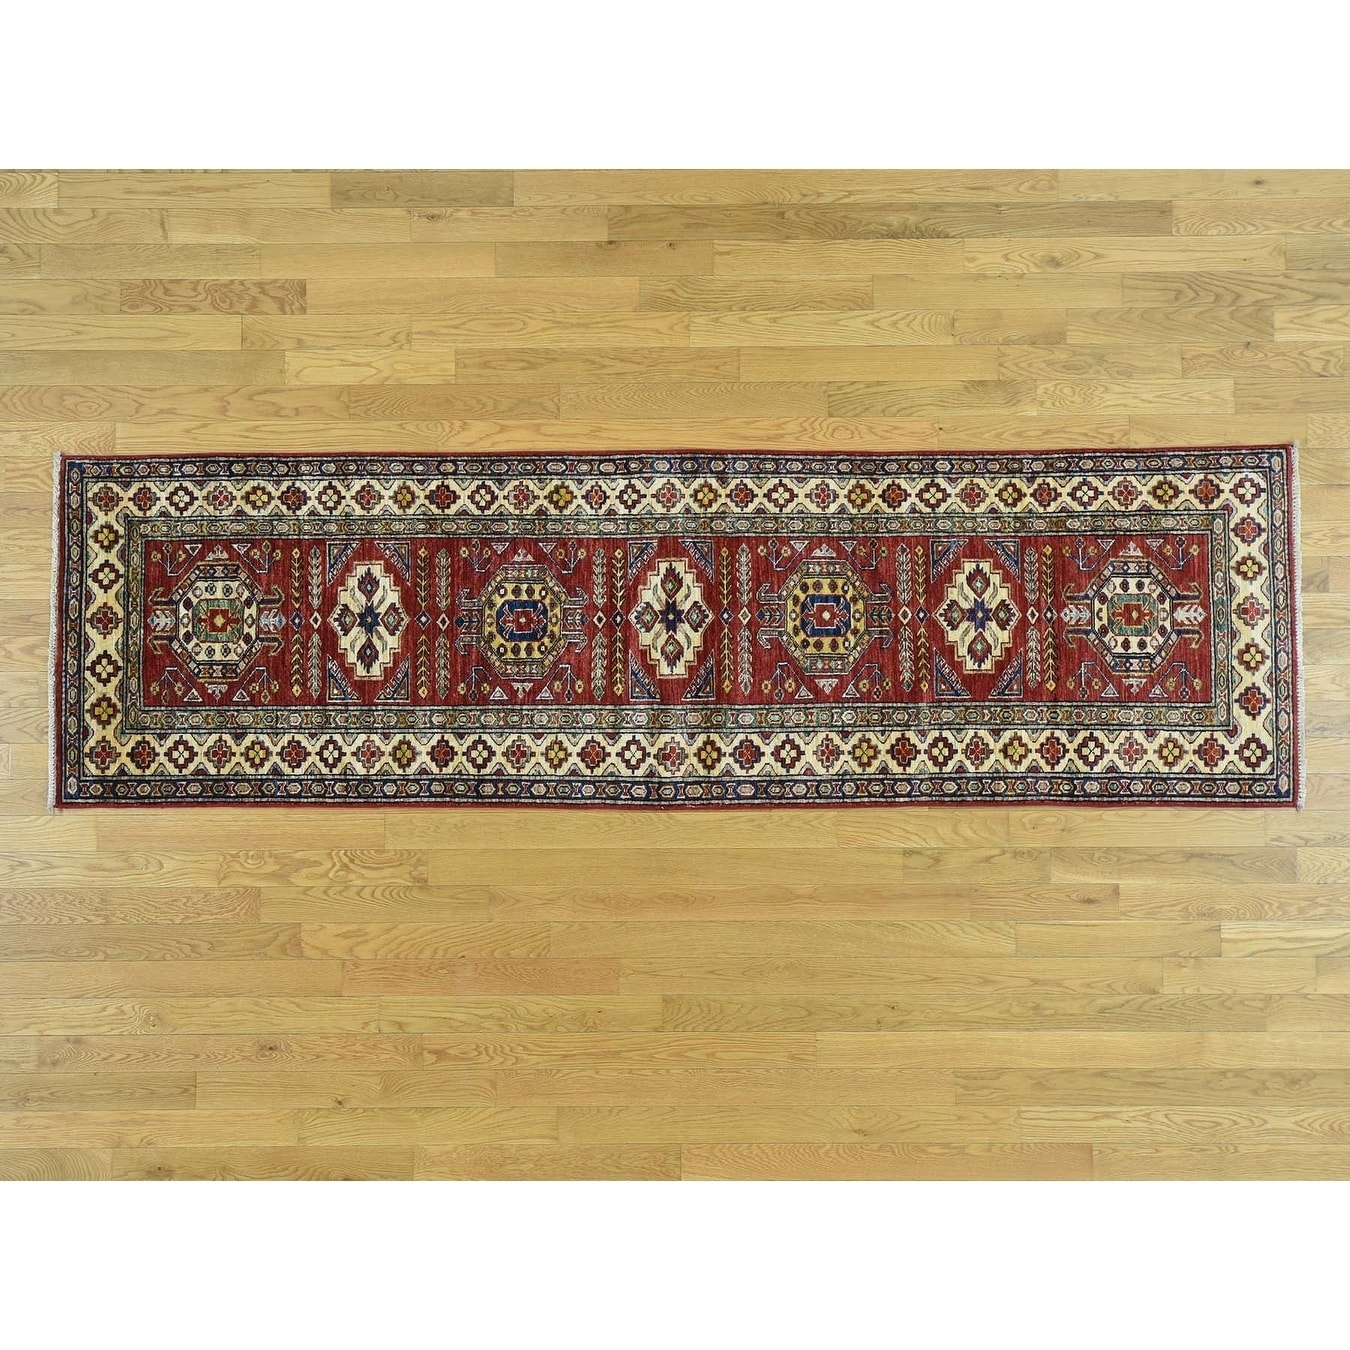 Hand Knotted Red Kazak with Wool Oriental Rug - 28 x 94